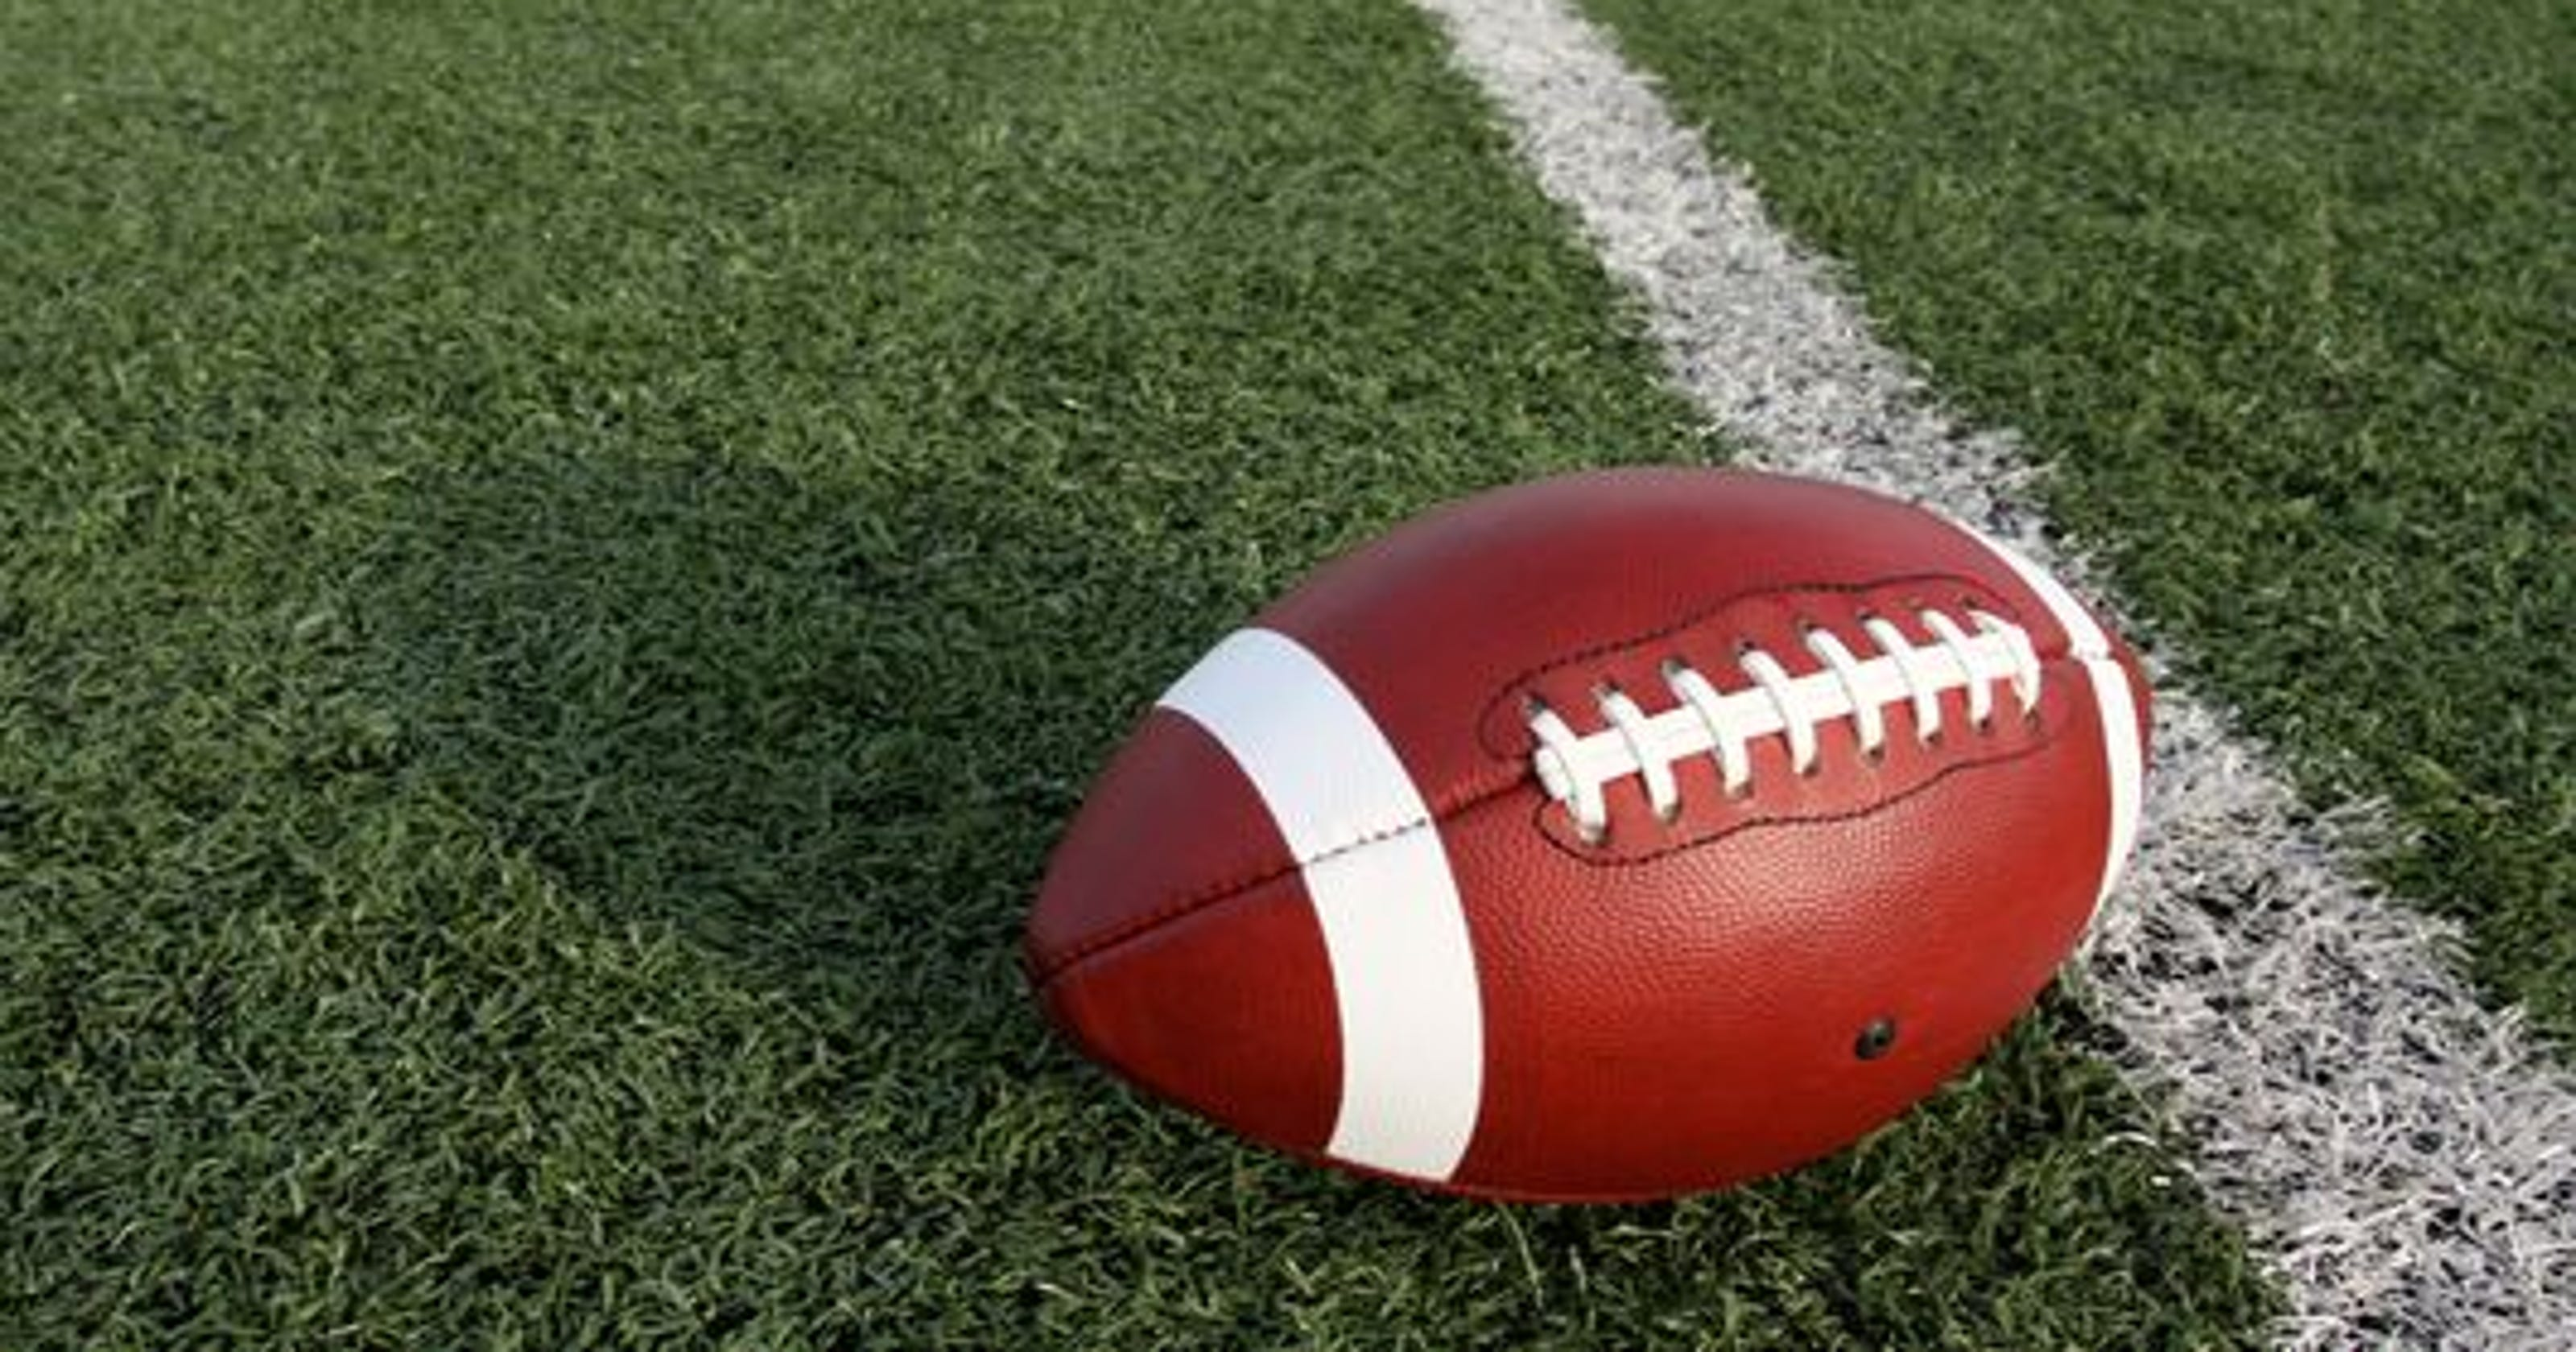 Brownsburg football player remains in ICU after crash